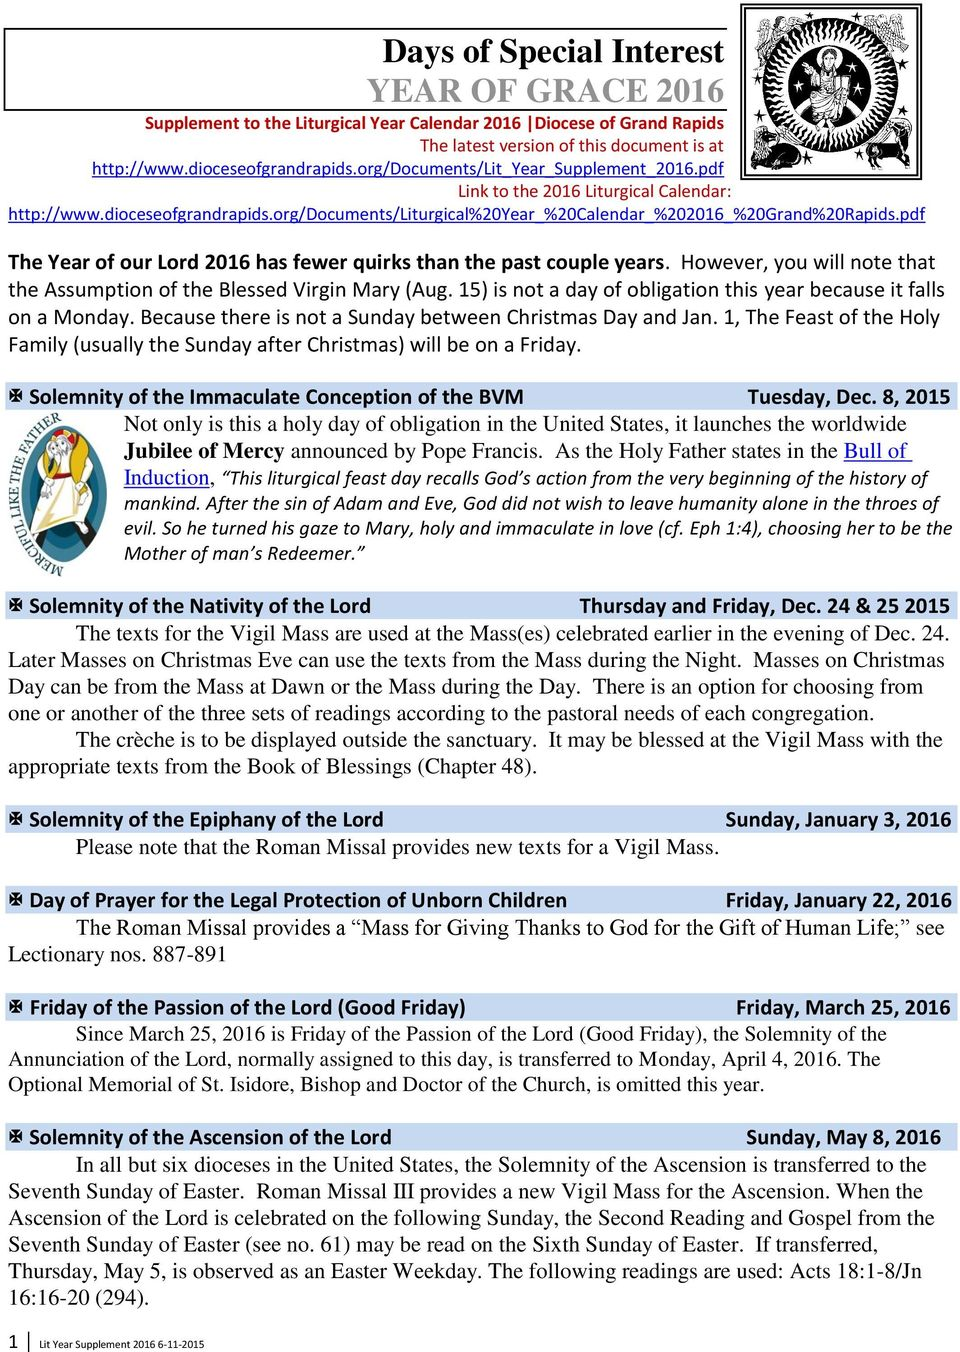 pdf The Year of our Lord 2016 has fewer quirks than the past couple years. However, you will note that the Assumption of the Blessed Virgin Mary (Aug.